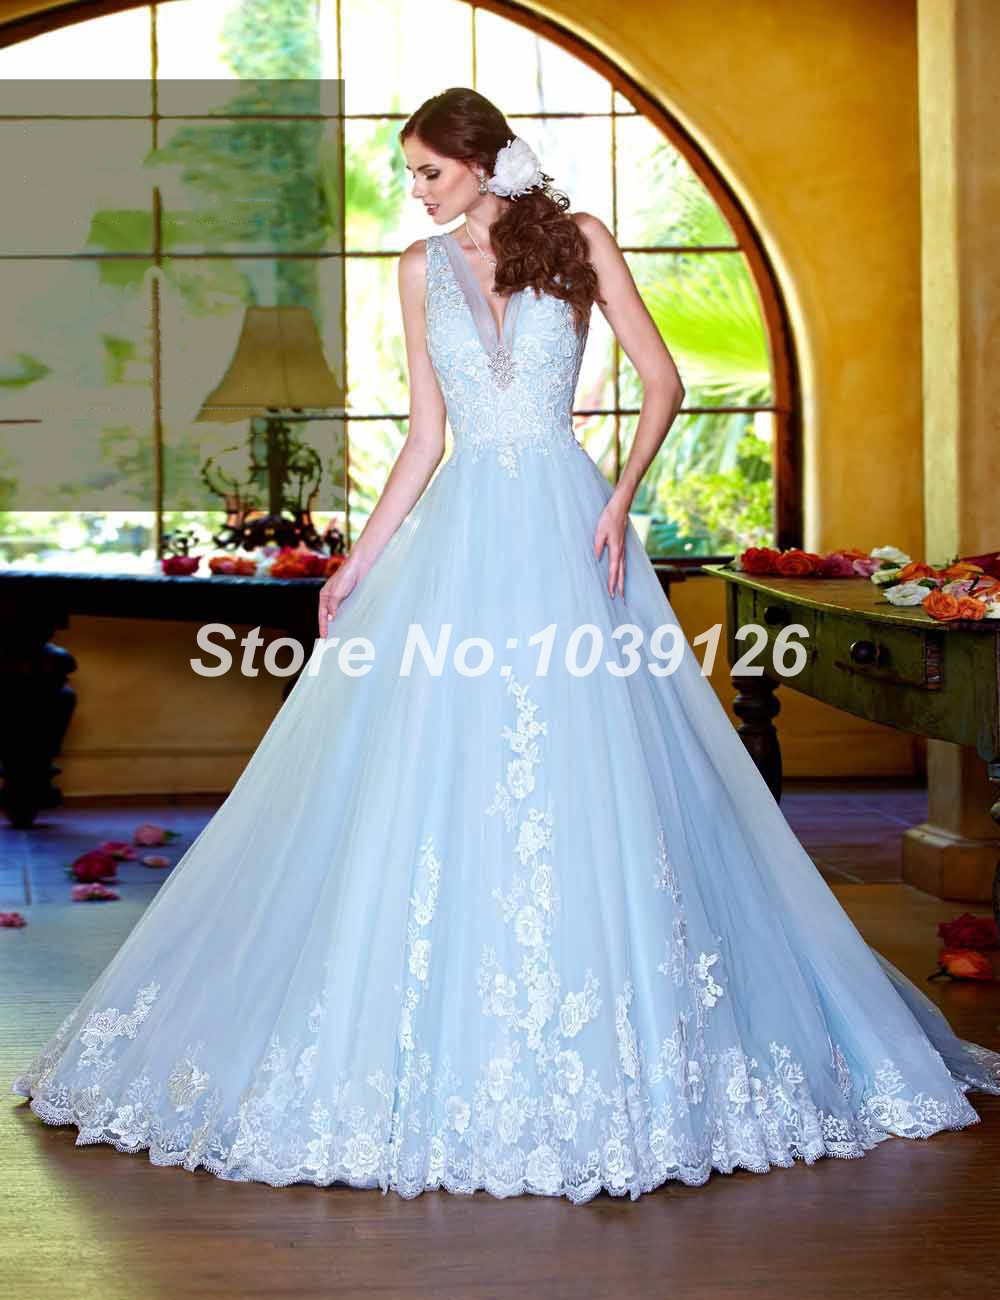 Online shop free shipping new fashion royal elegant sleeveless online shop free shipping new fashion royal elegant sleeveless zipper unique sky blue lace long wedding dresses 2015 aliexpress mobile ombrellifo Image collections